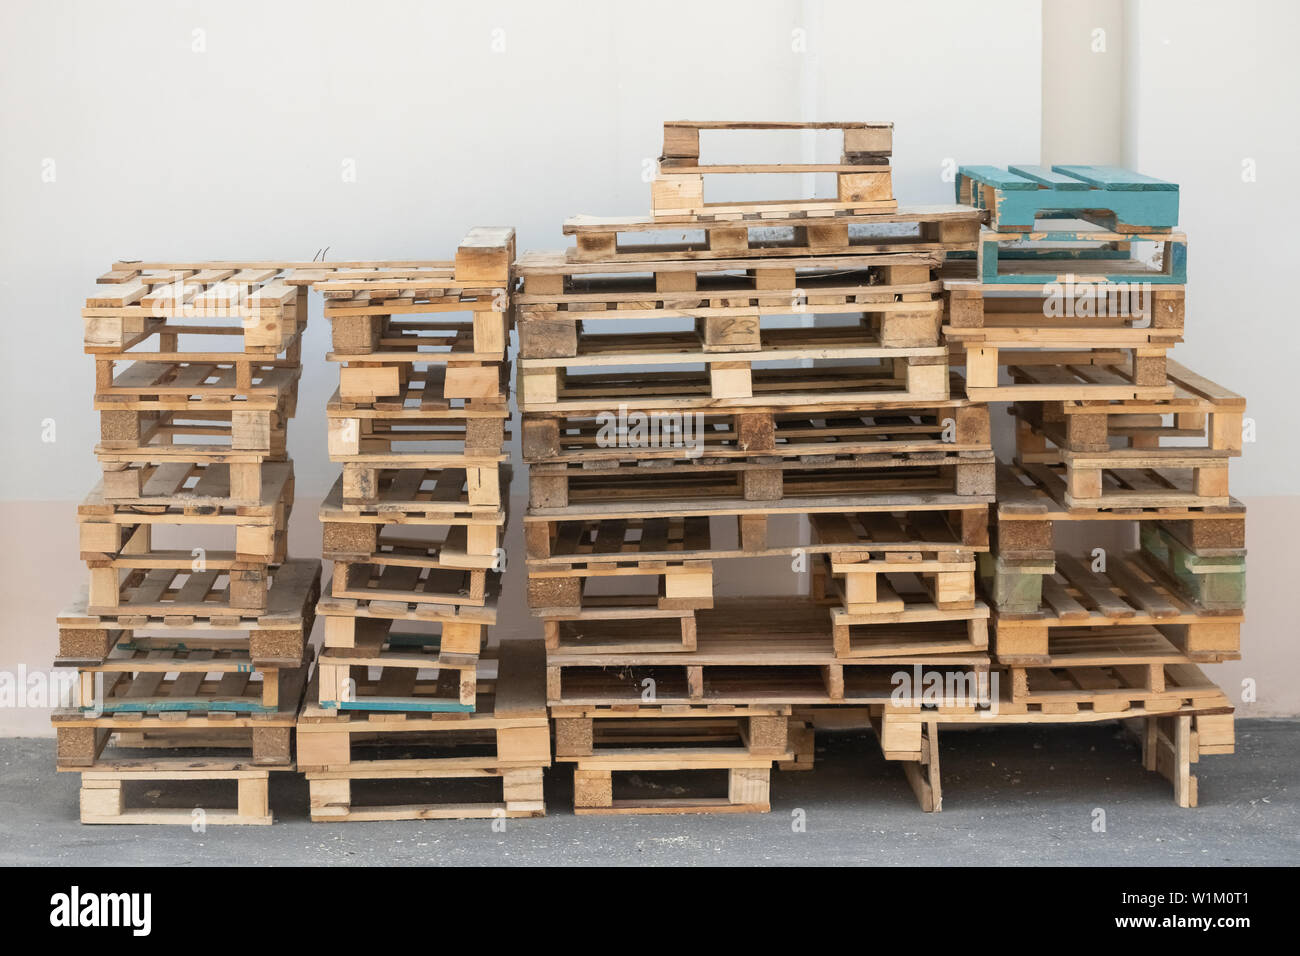 description: Pallets stacked on top of each other on the ground and against a white wall Stock Photo